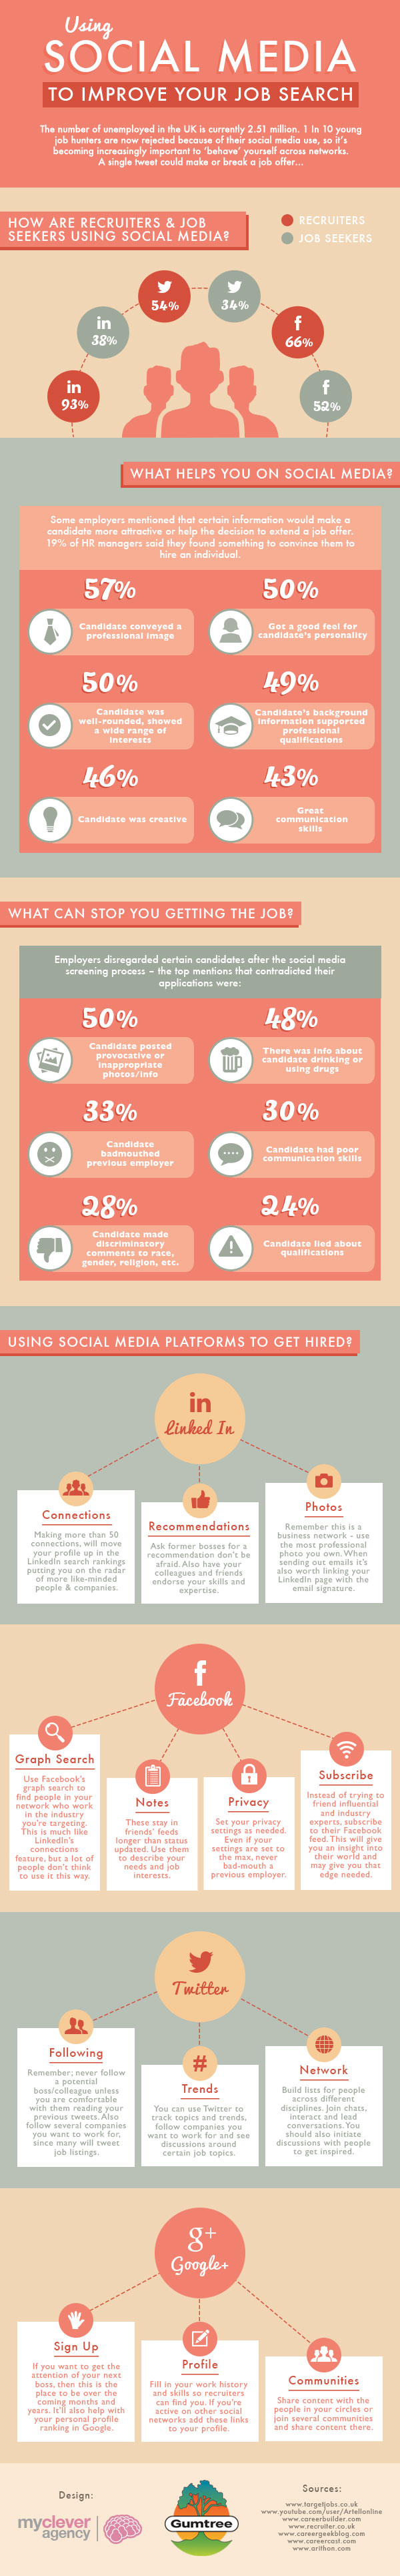 Use Social Media To Improve Your Job Search